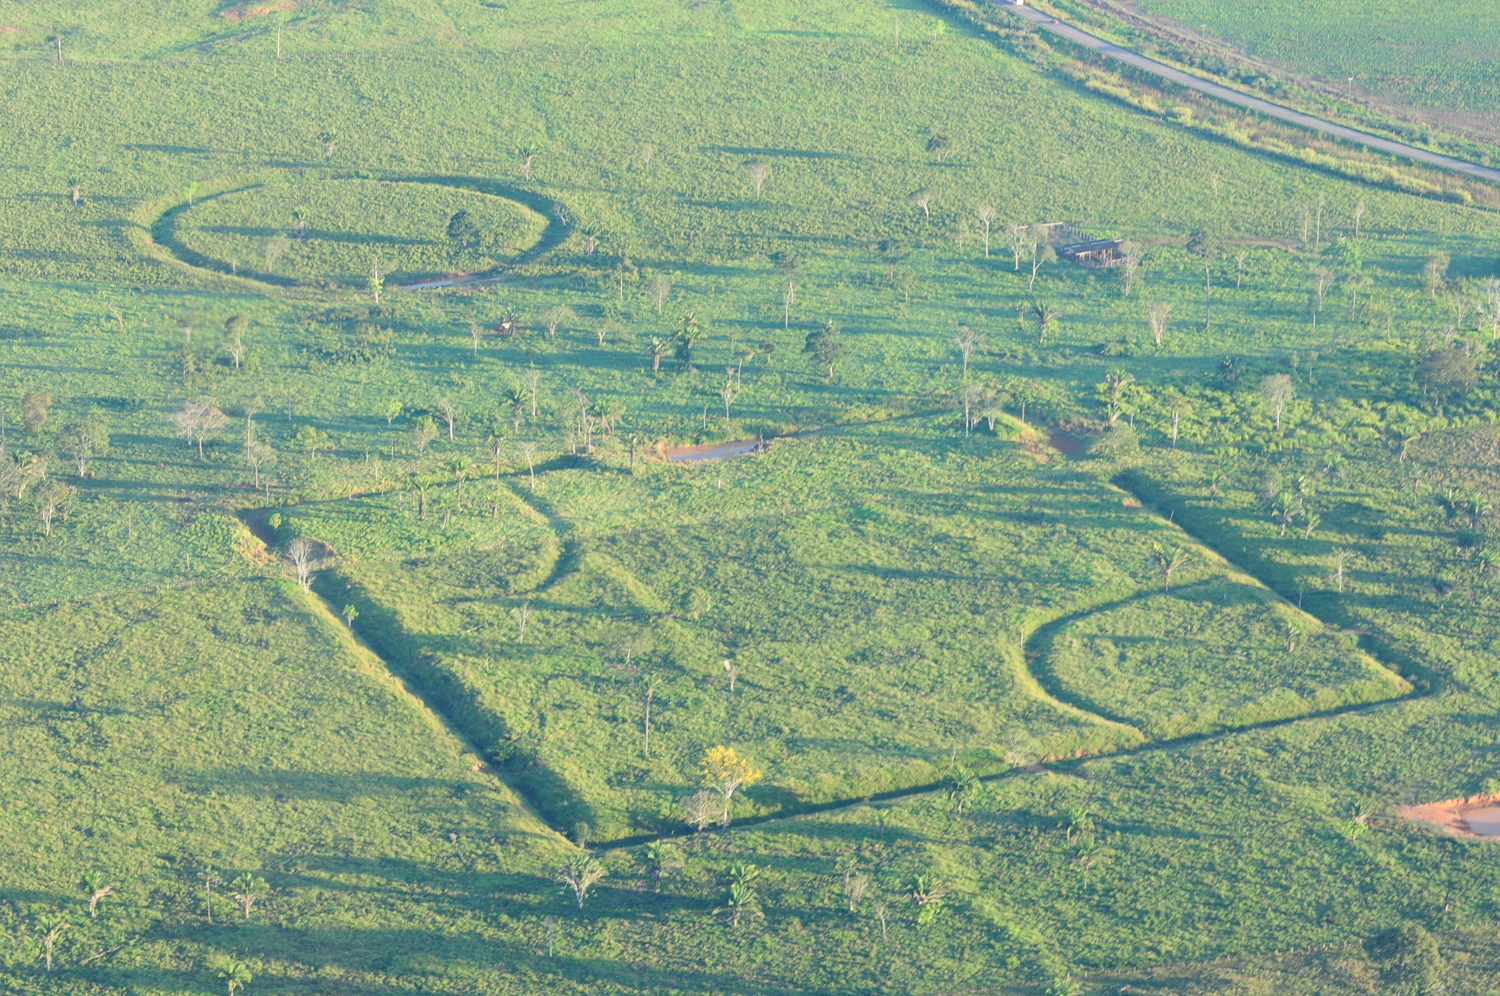 In Photos: Mysterious Amazonian Geoglyphs | Live Science